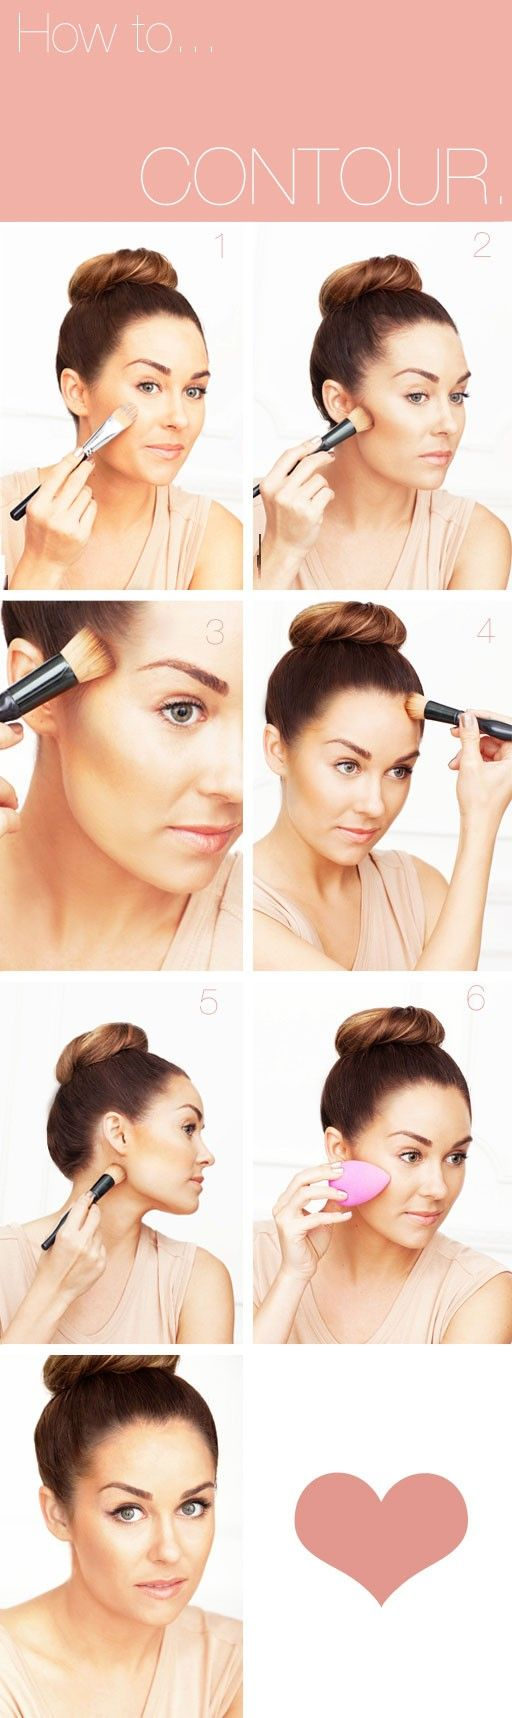 How to Contour - The Beauty Thesis